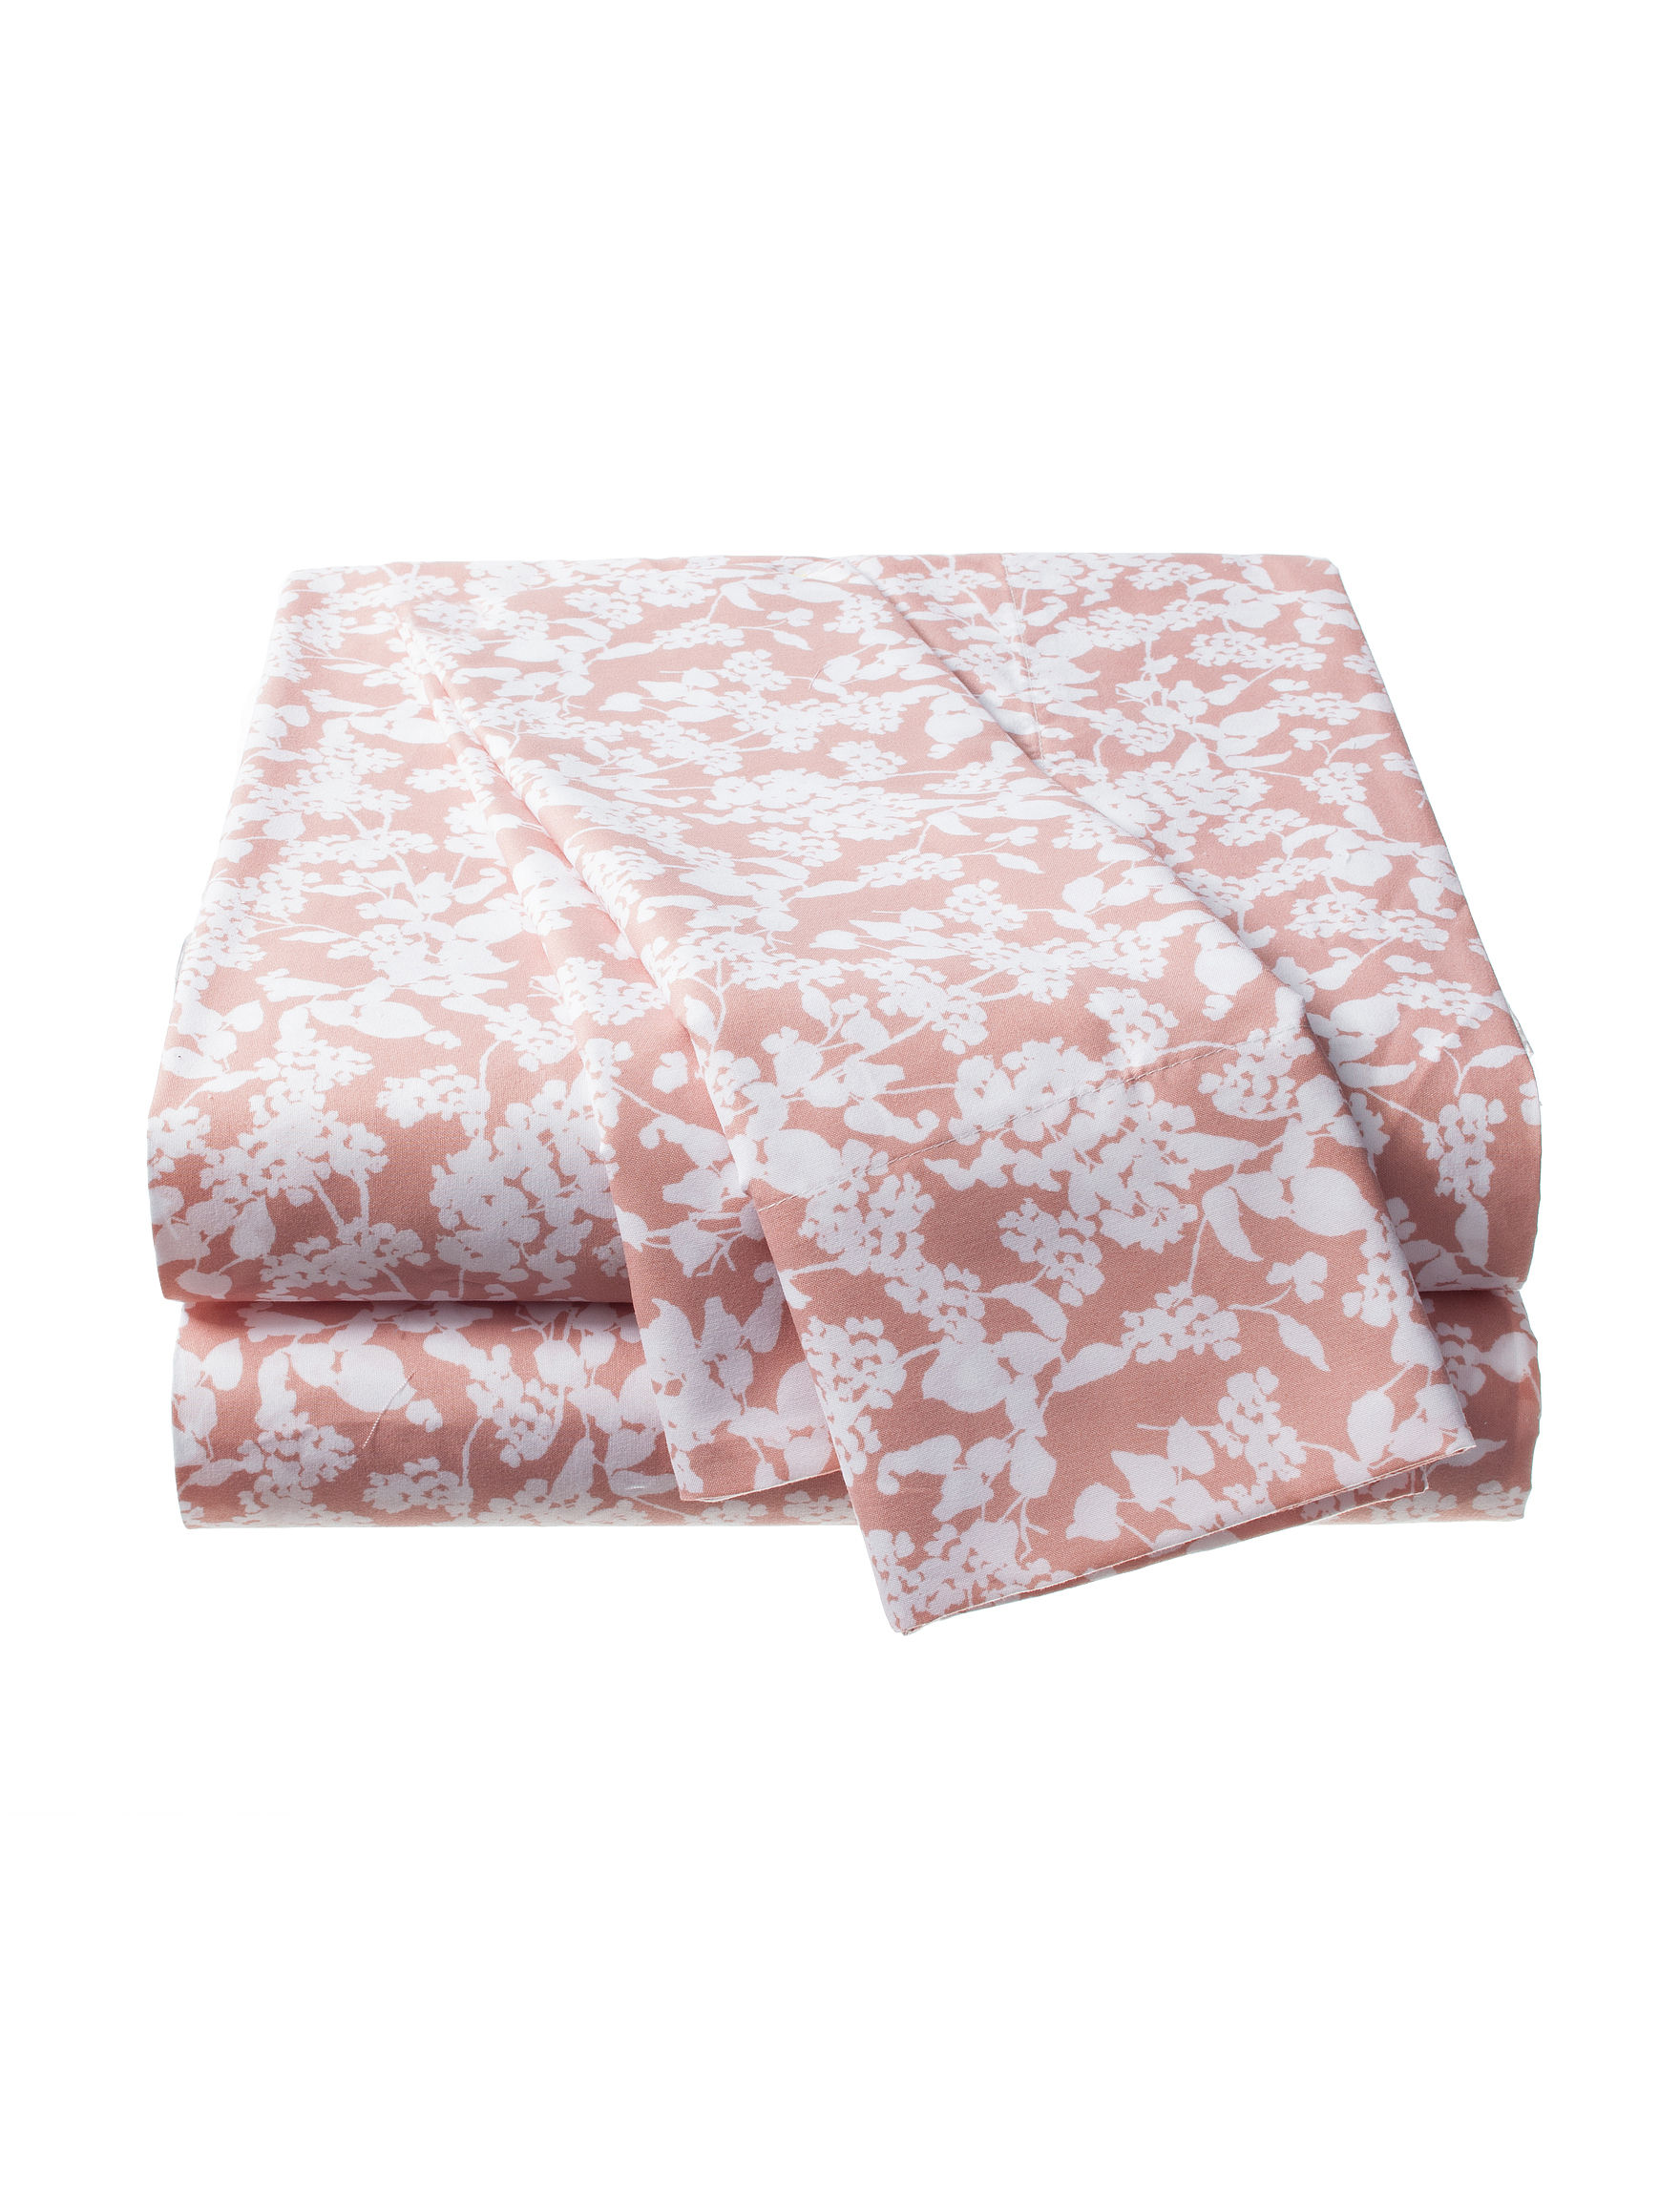 Great Hotels Collection Rose Sheets & Pillowcases